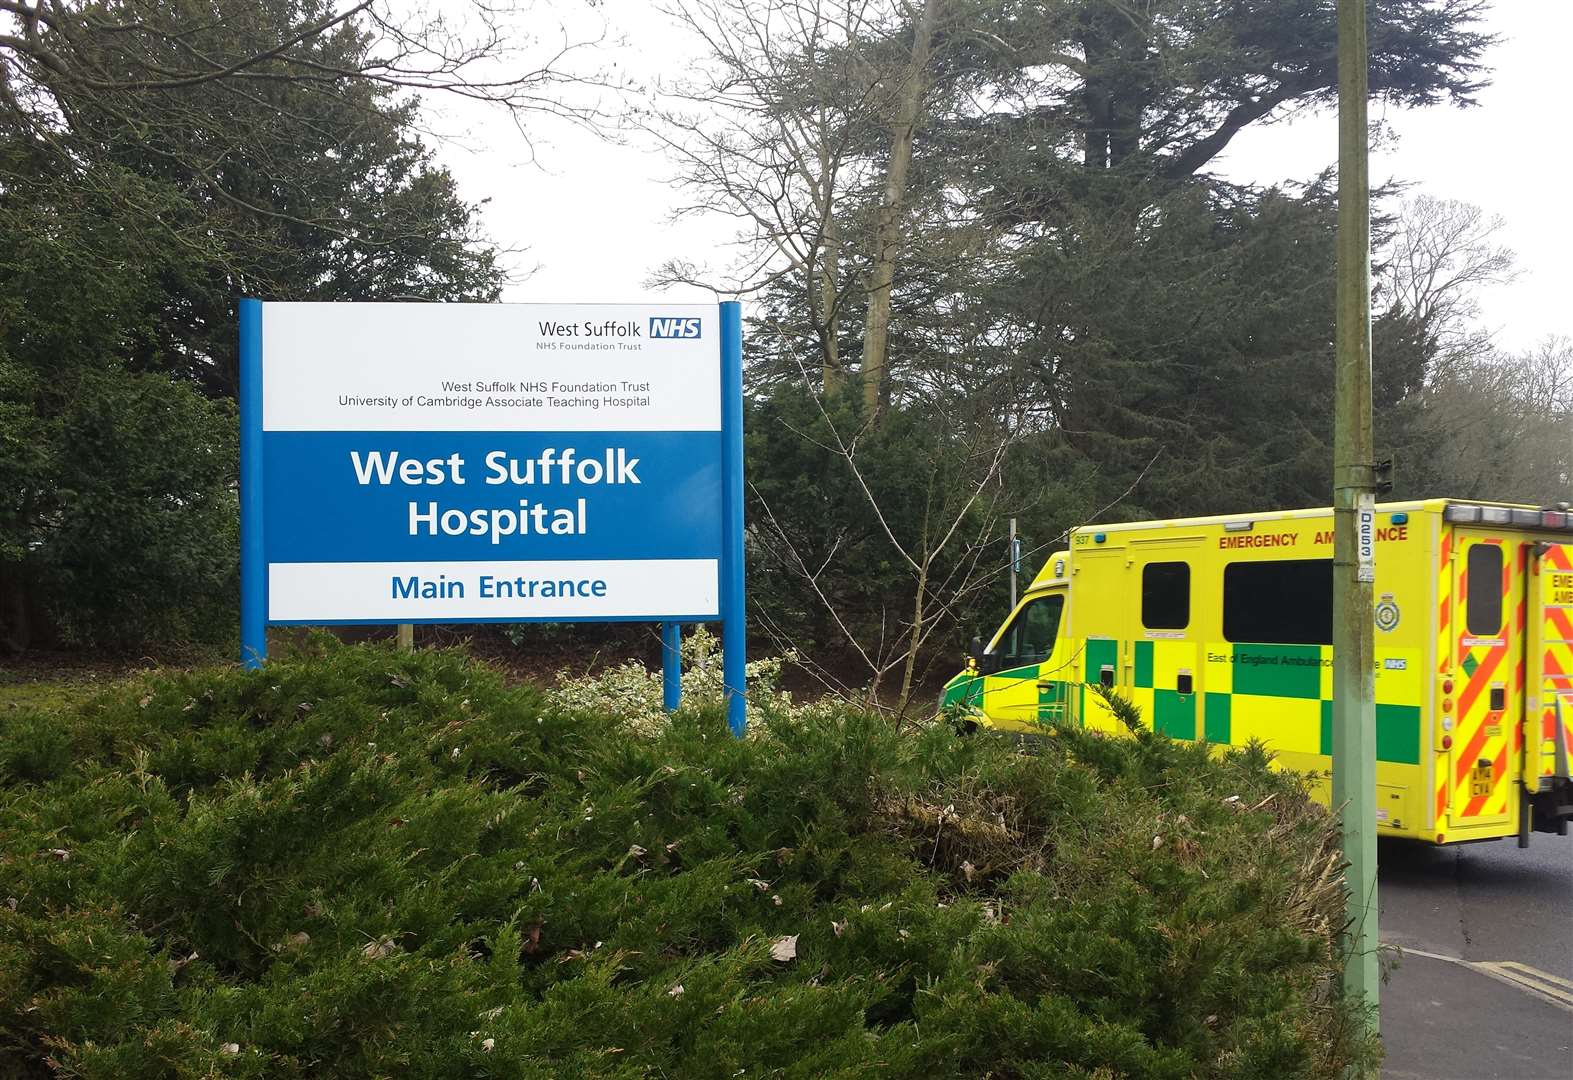 West Suffolk Hospital 'must improve' maternity services relating to observations